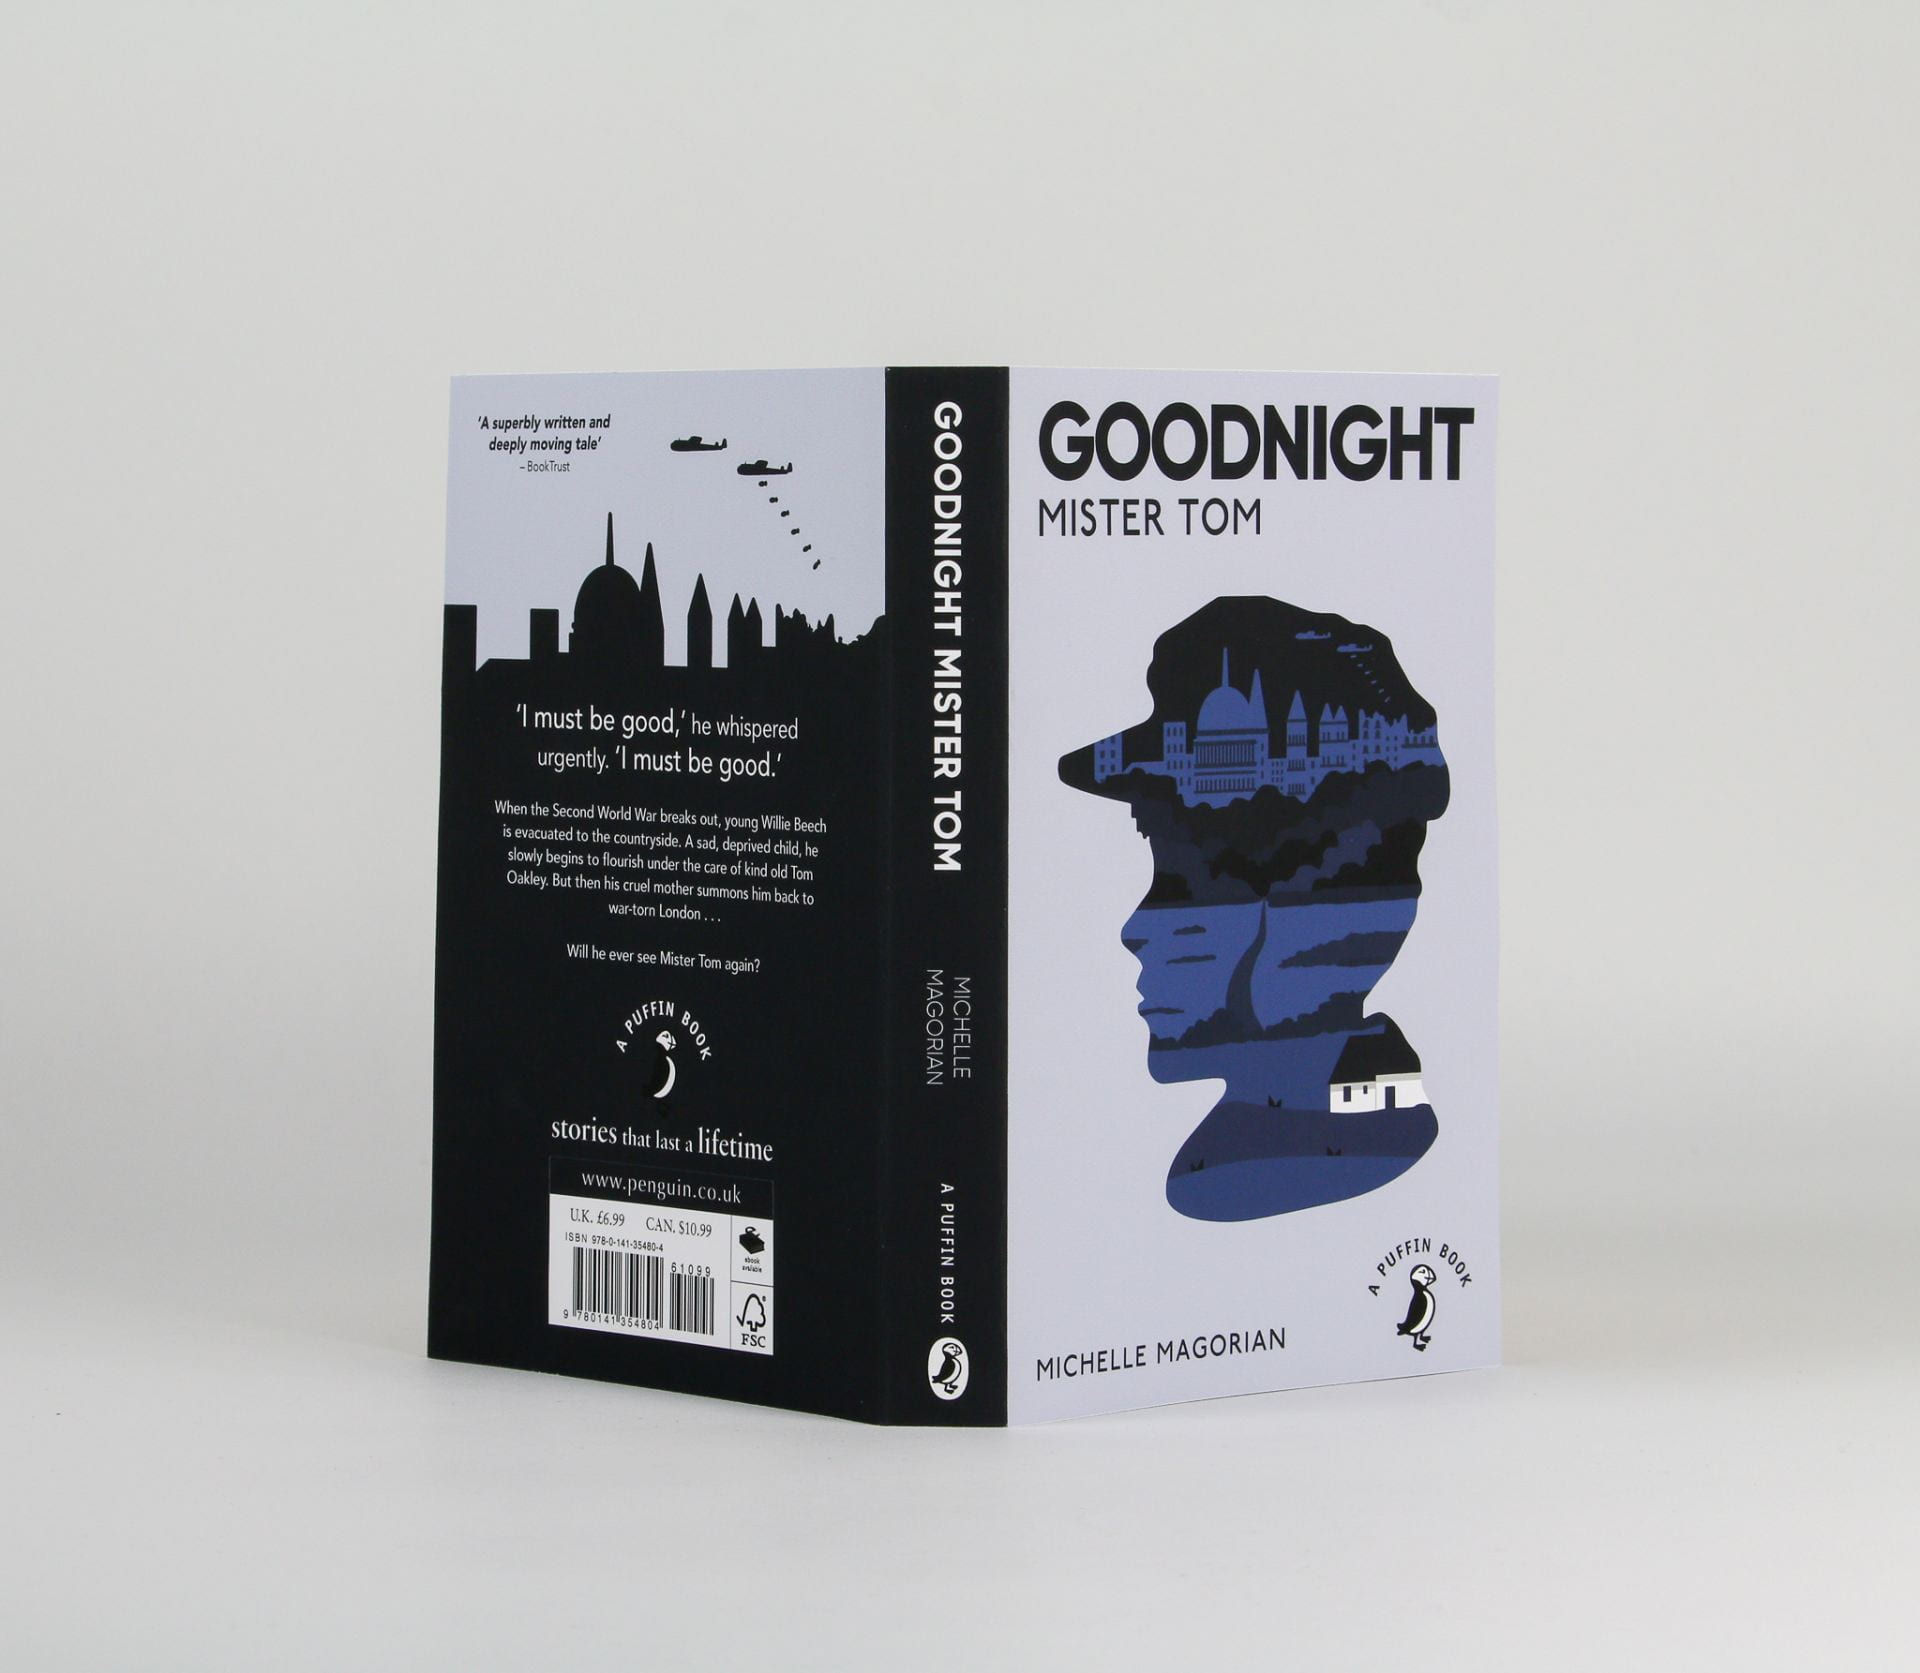 Mock up showing both covers of the book together